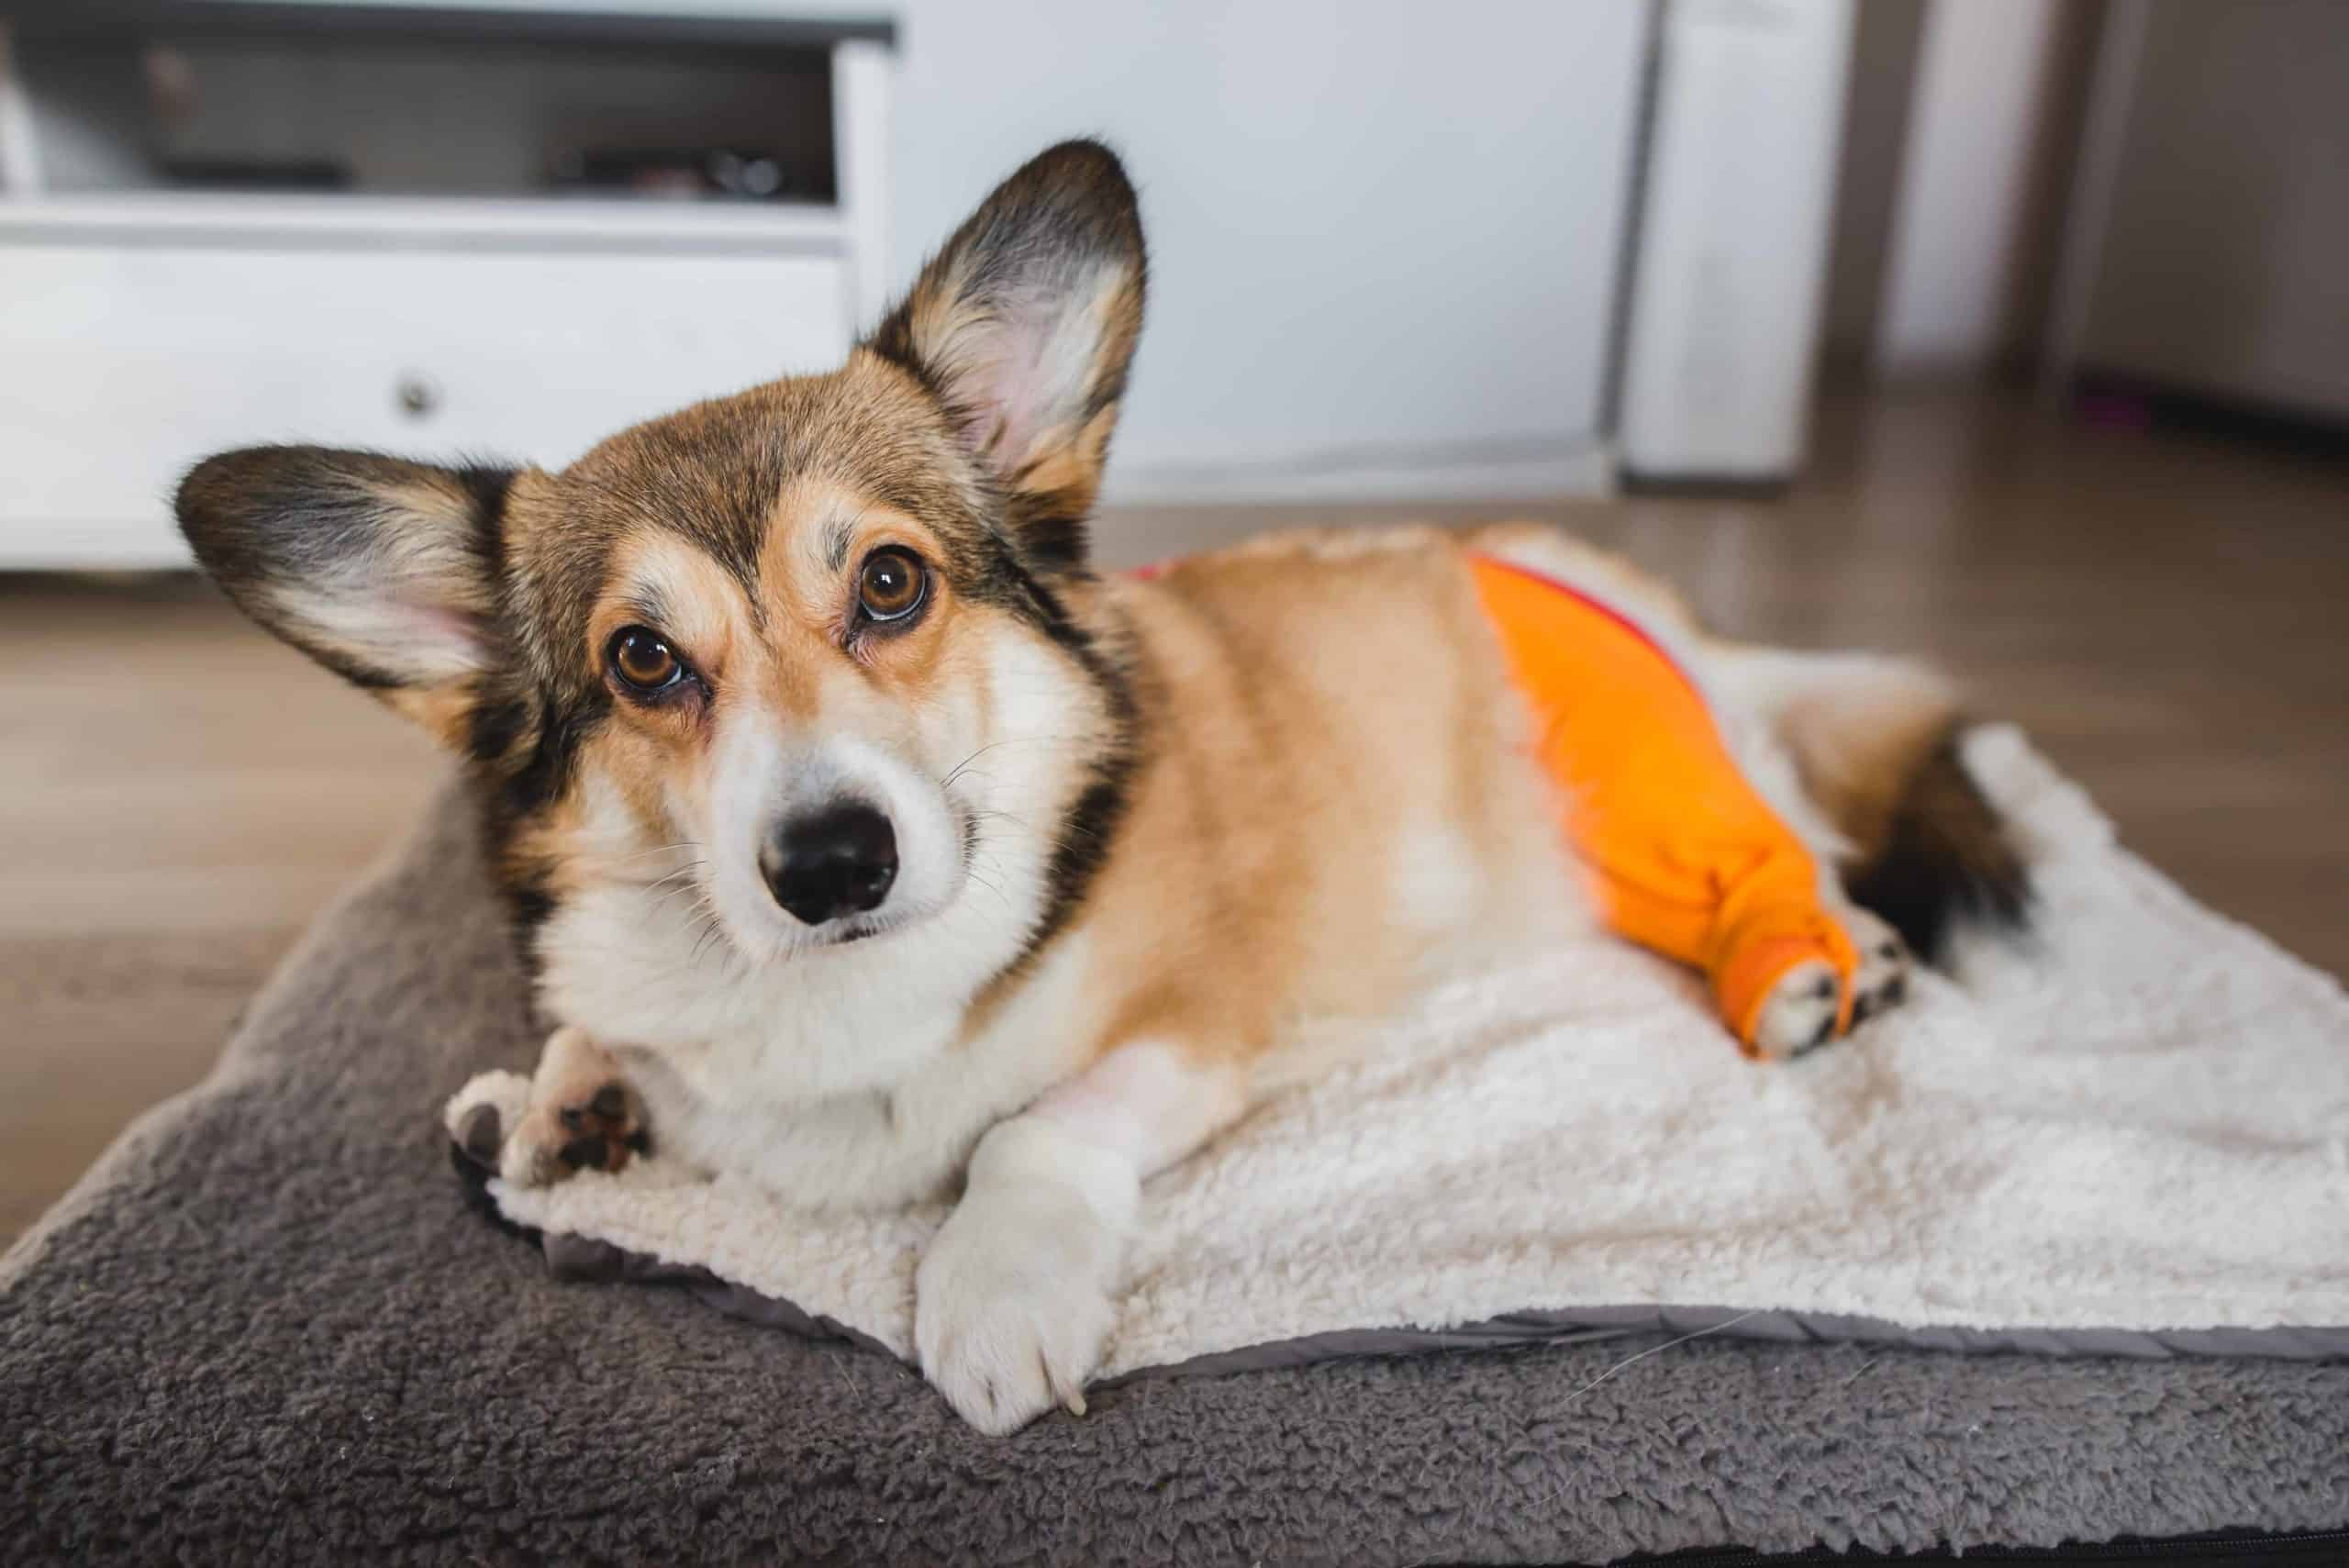 Pembroke Welsh Corgi recovers after TPLO surgery to repair ACL tears.